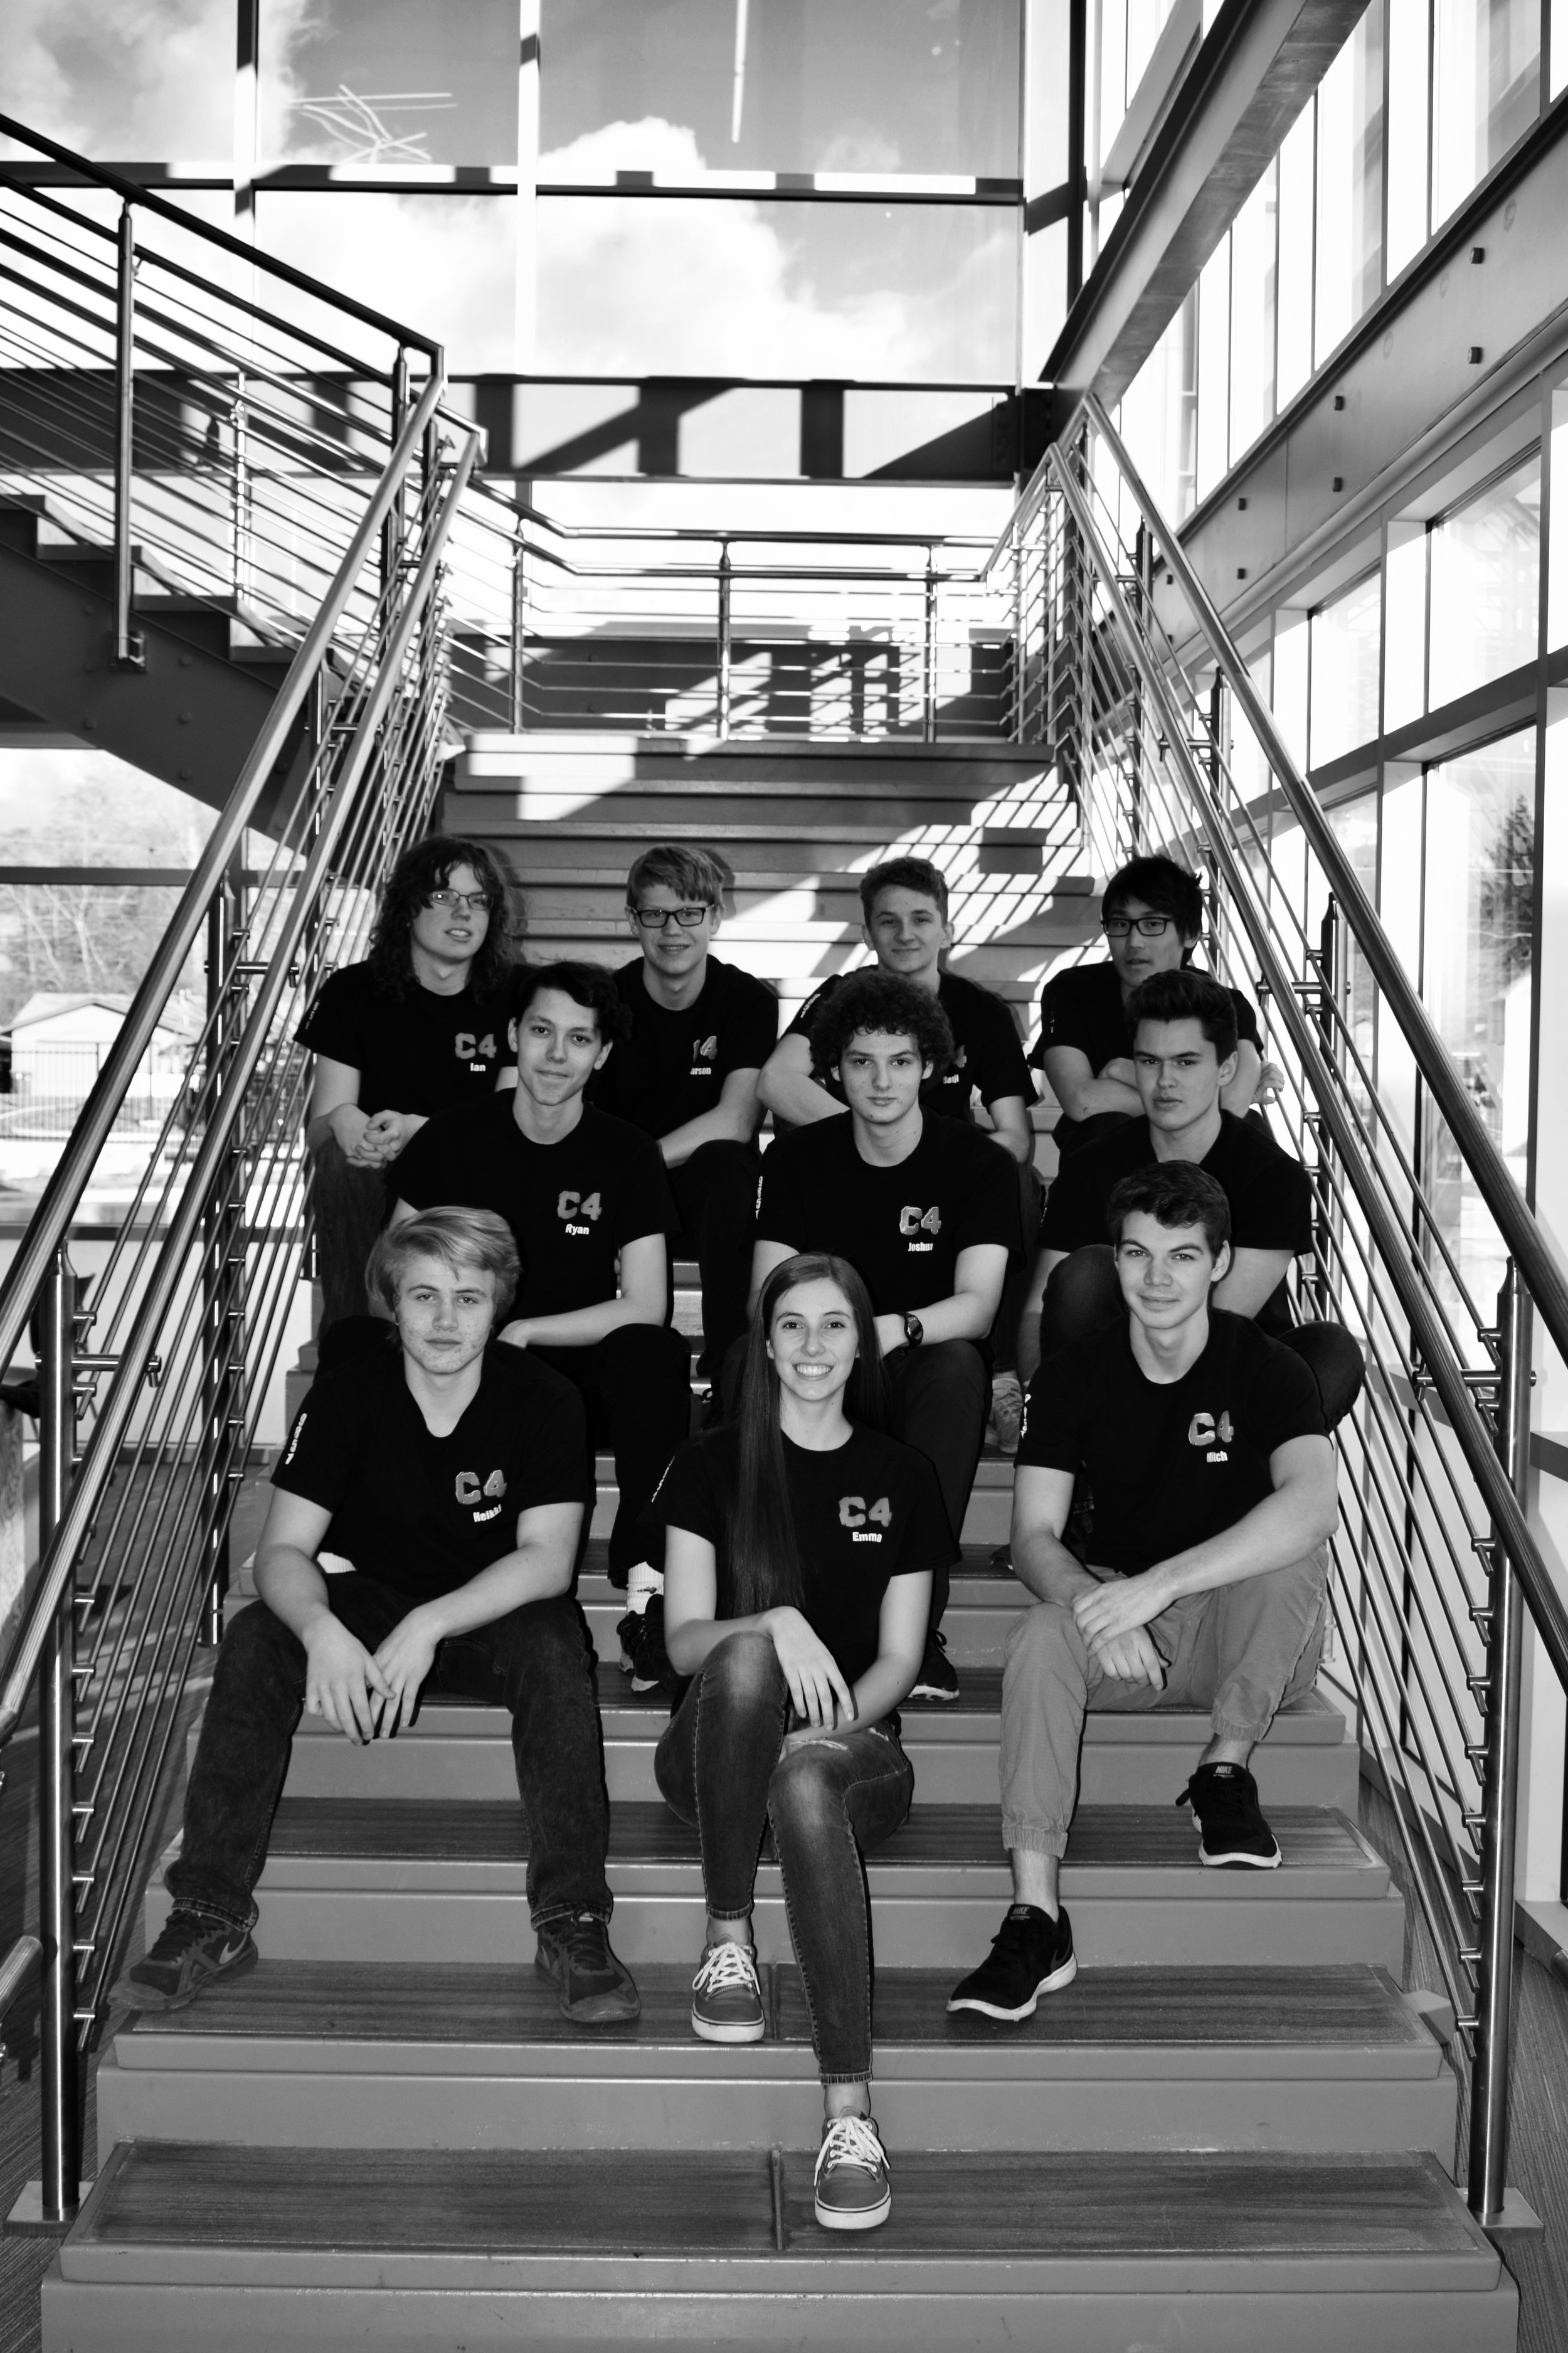 The 2018-2019 team posing on the stairs of the newly constructed STEM center at St. Mary's high school in Medford, Oregon.